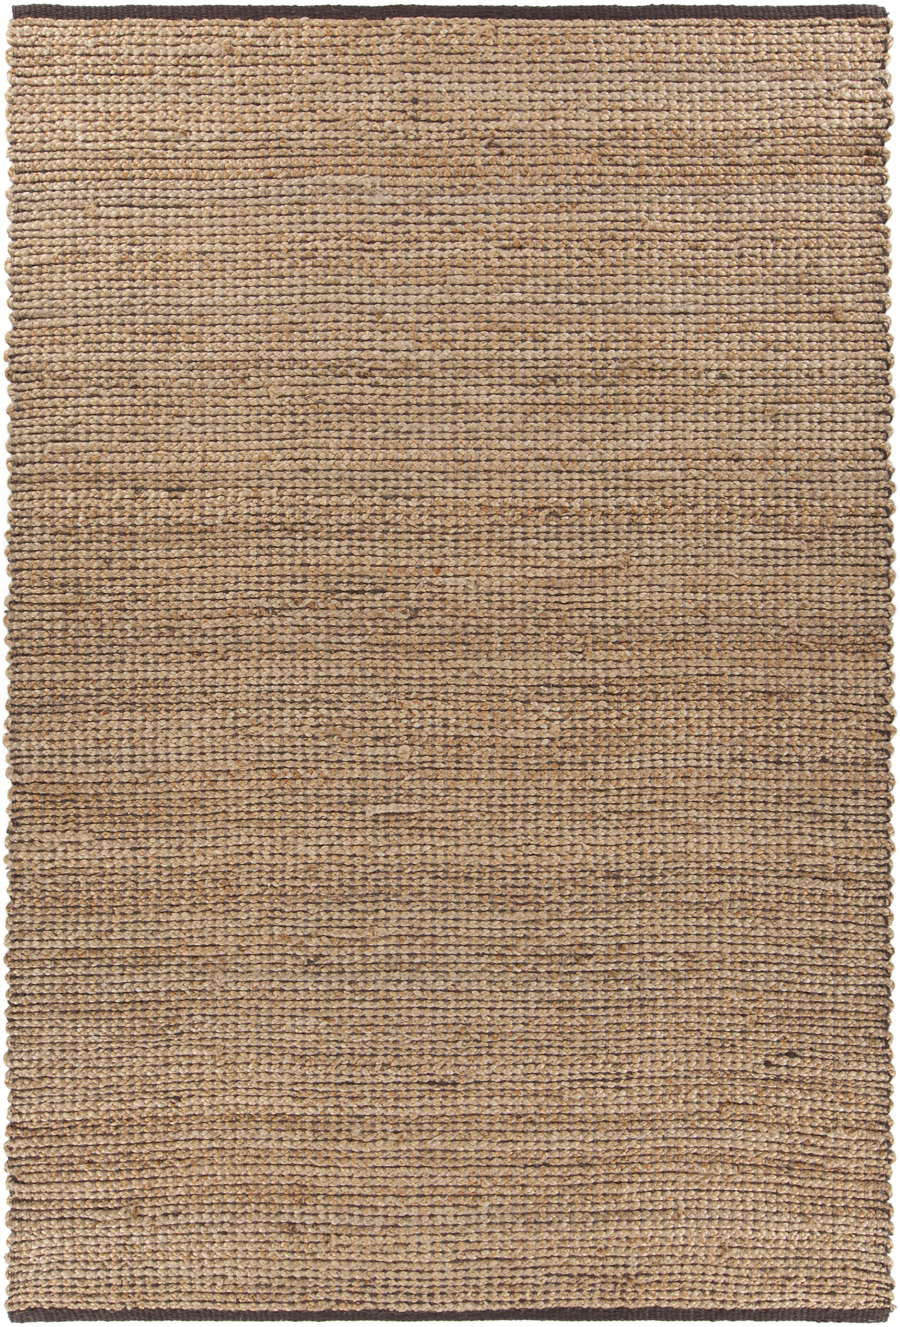 Chandra Zola ZOL17104 Area Rug